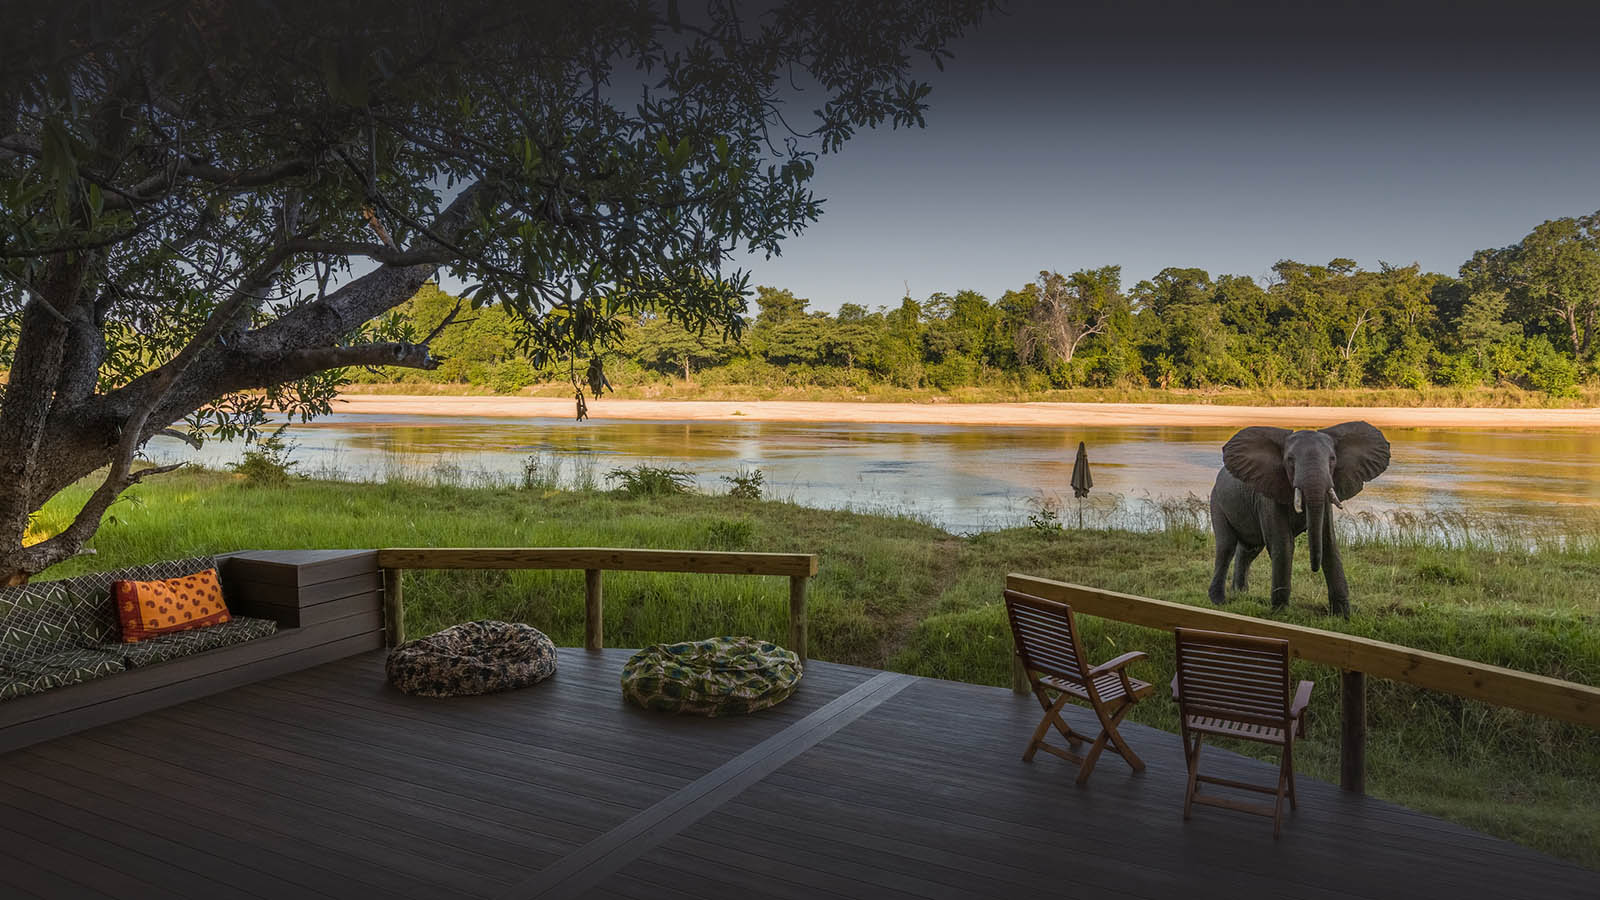 kapamba bushcamp lodge-zambia-in-style-tours-travel-safari-packages-lodges-south-luangwa-national-park-deck-elephant